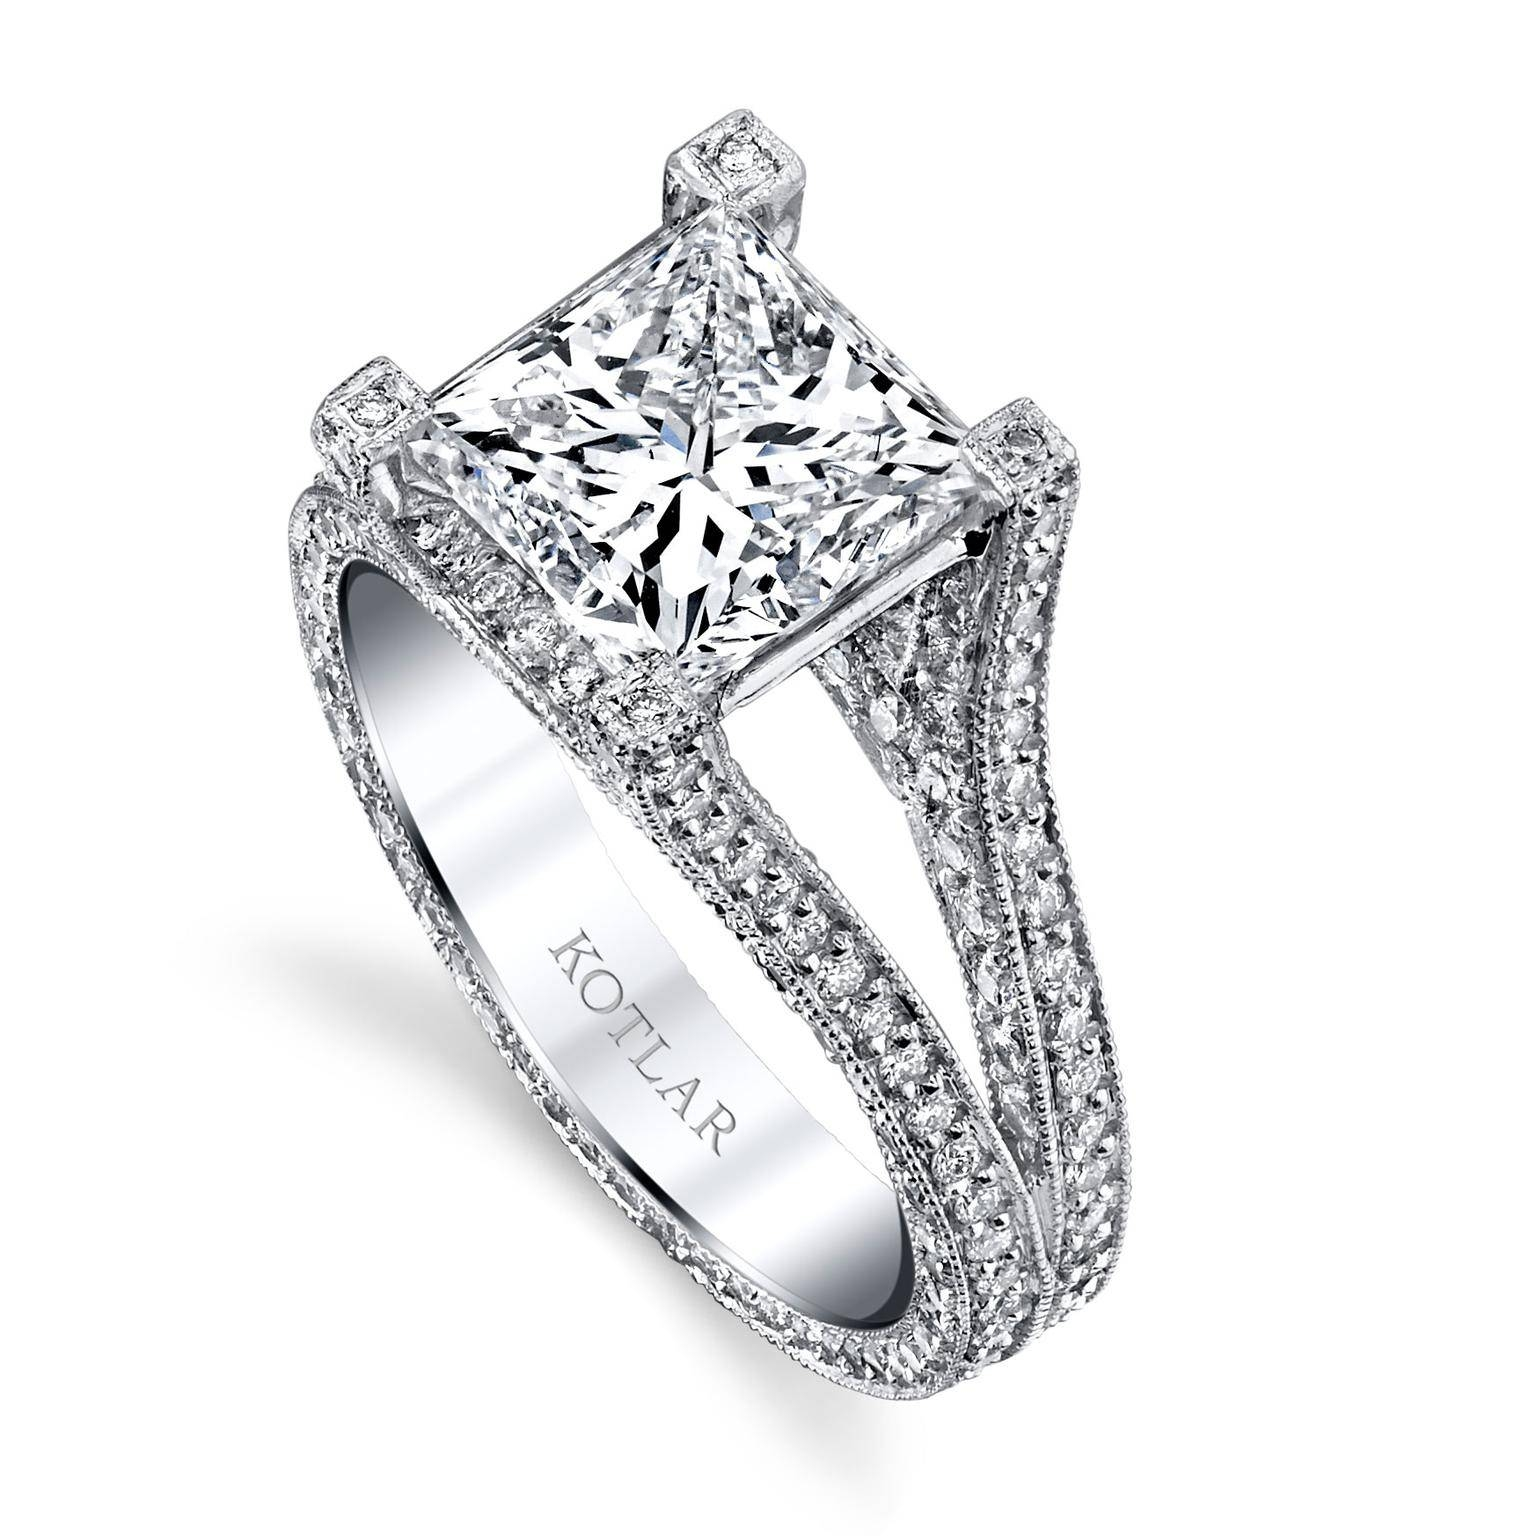 The Romantic Appeal Of Princess Cut Engagement Rings | The Intended For Princess Shaped Engagement Rings (View 11 of 15)